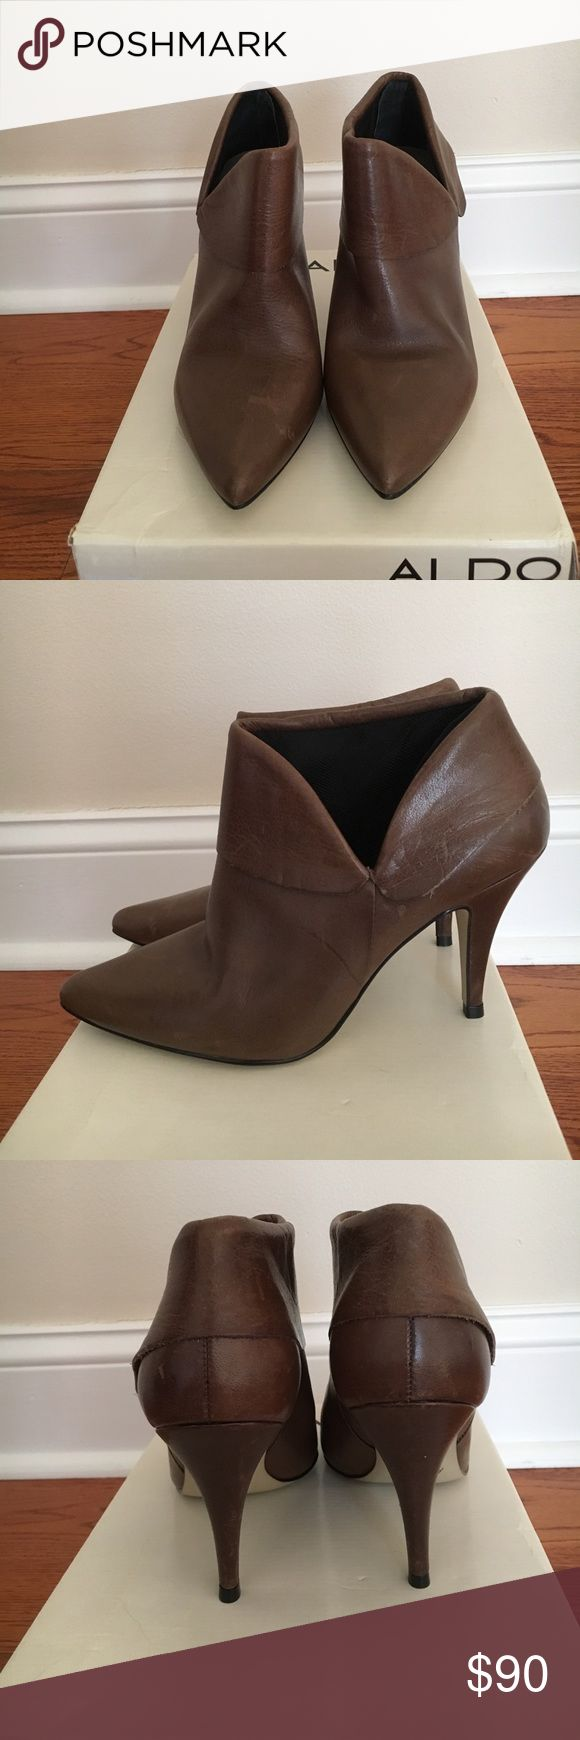 ALDO Boots NWT cute Aldo boots. Heel measures approximately 4 inches. Aldo Shoes Ankle Boots & Booties